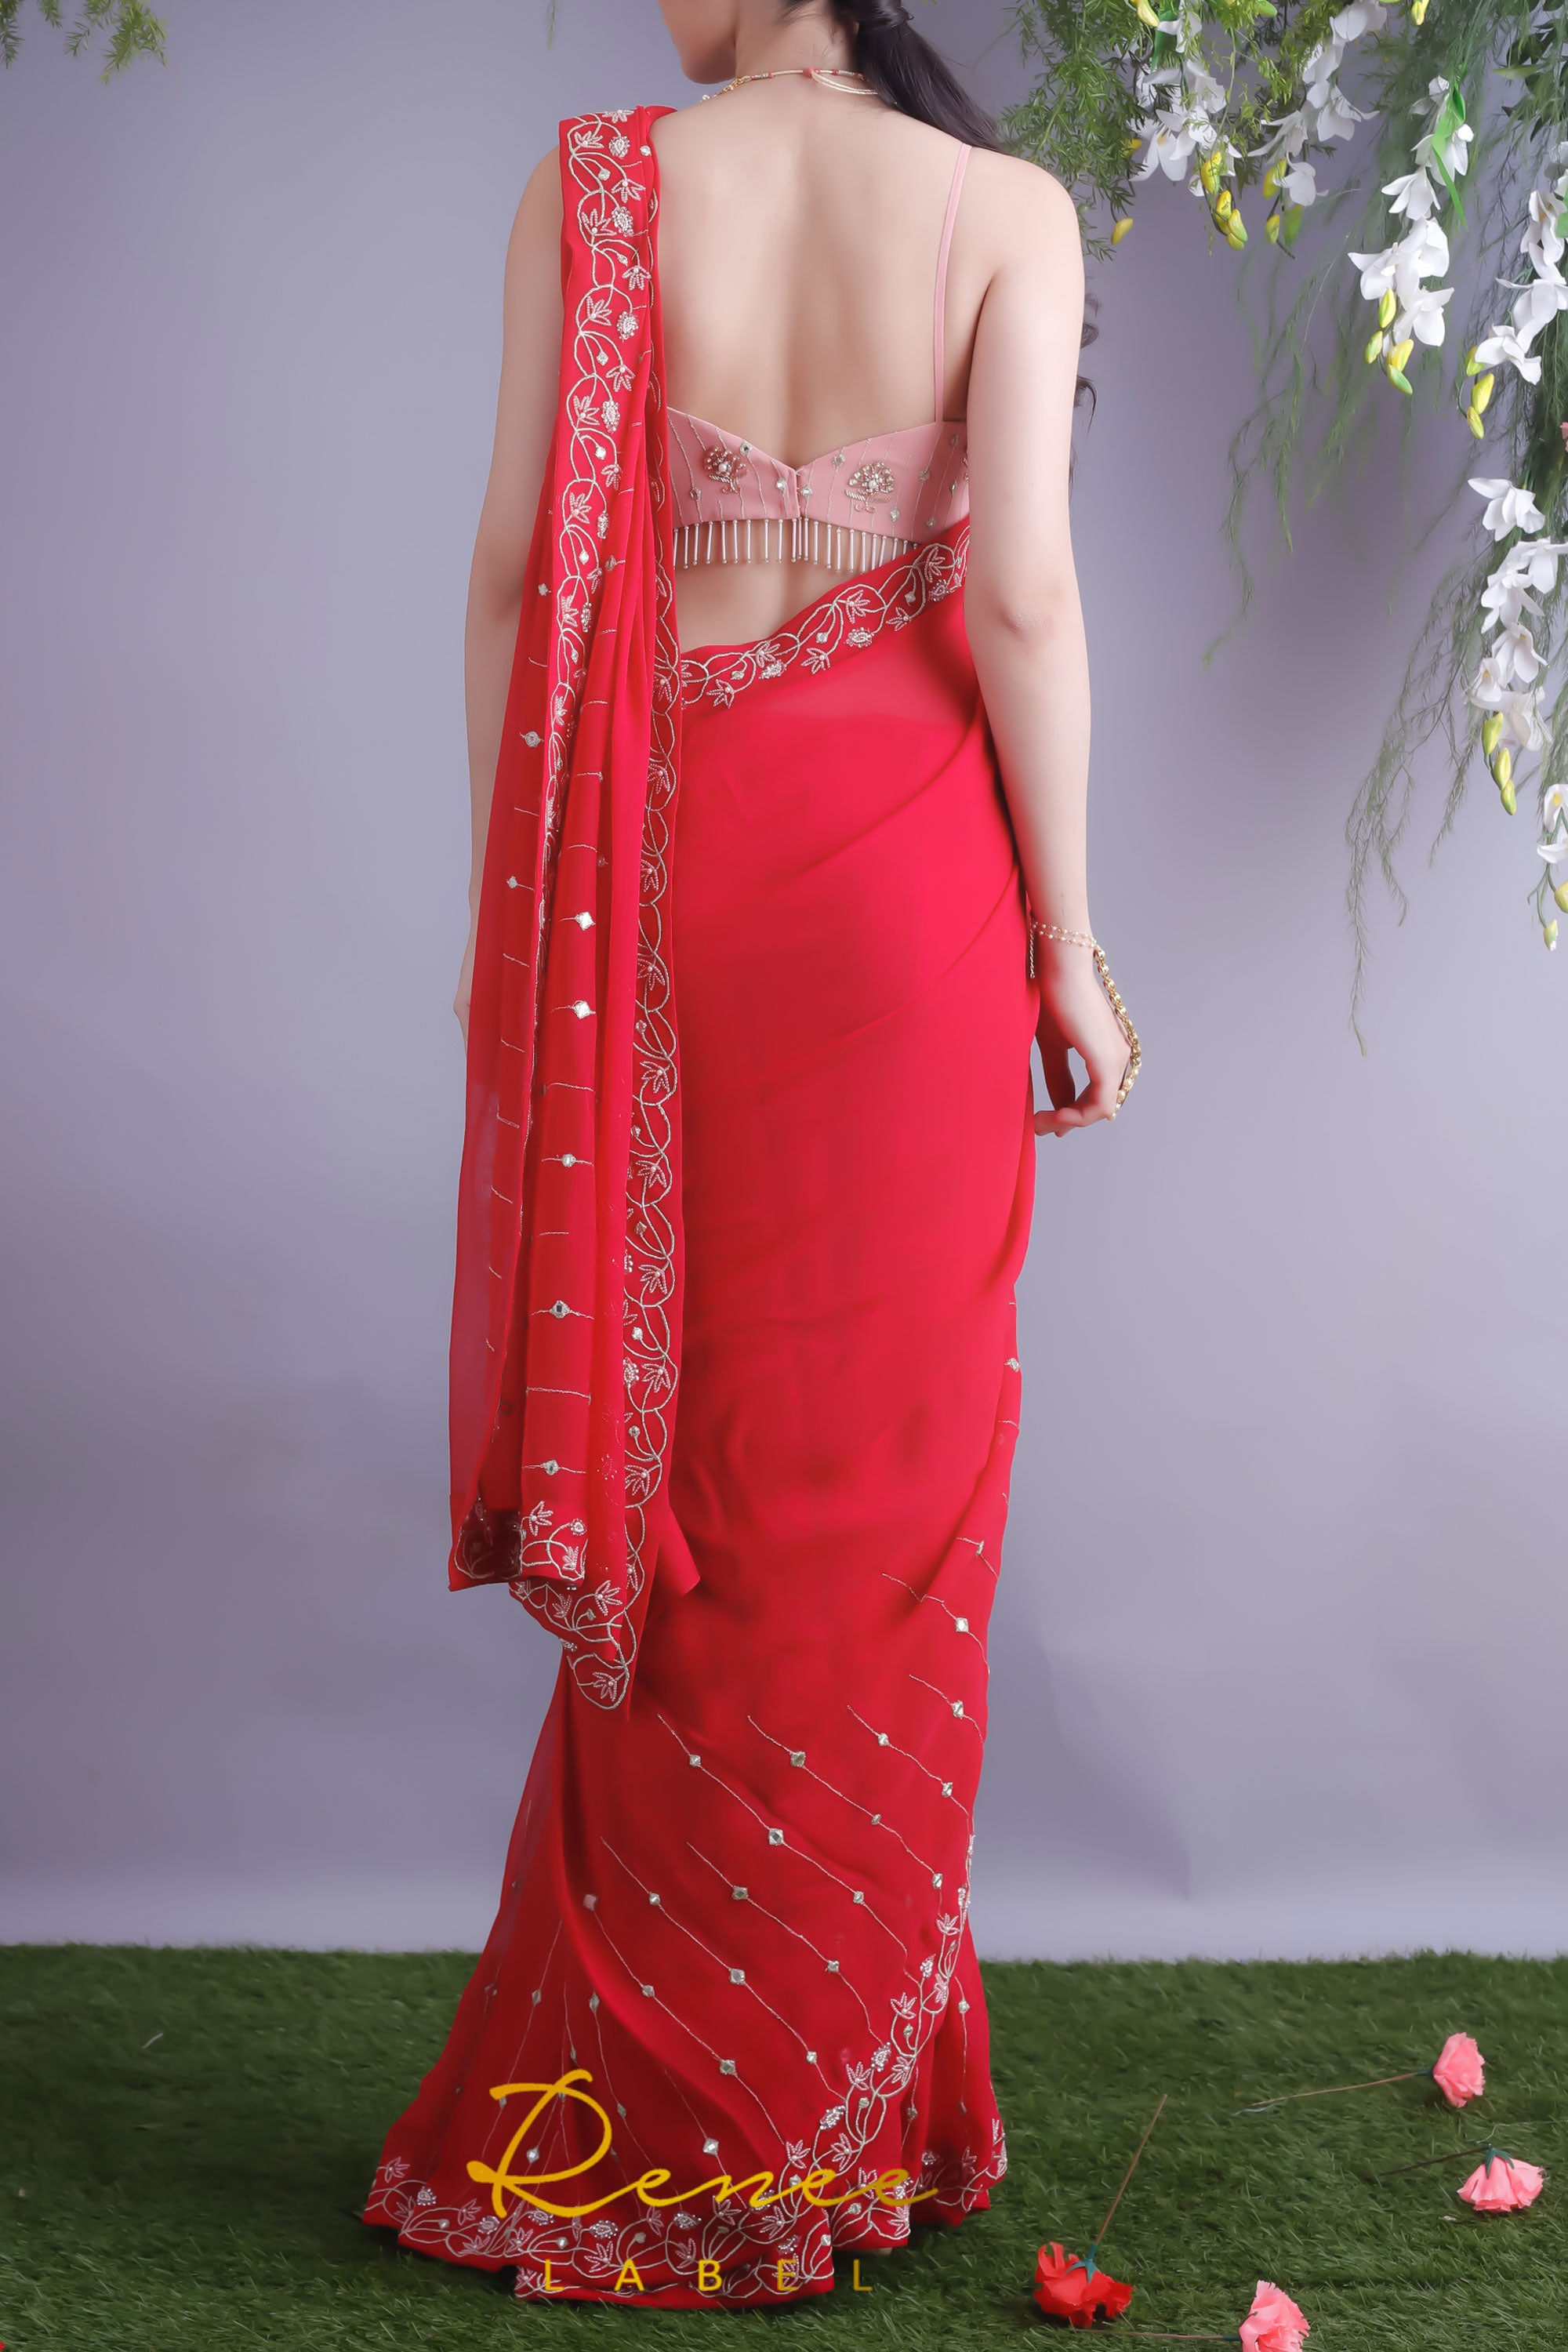 Rose Red Saree & Blush Pink Crop Top Back